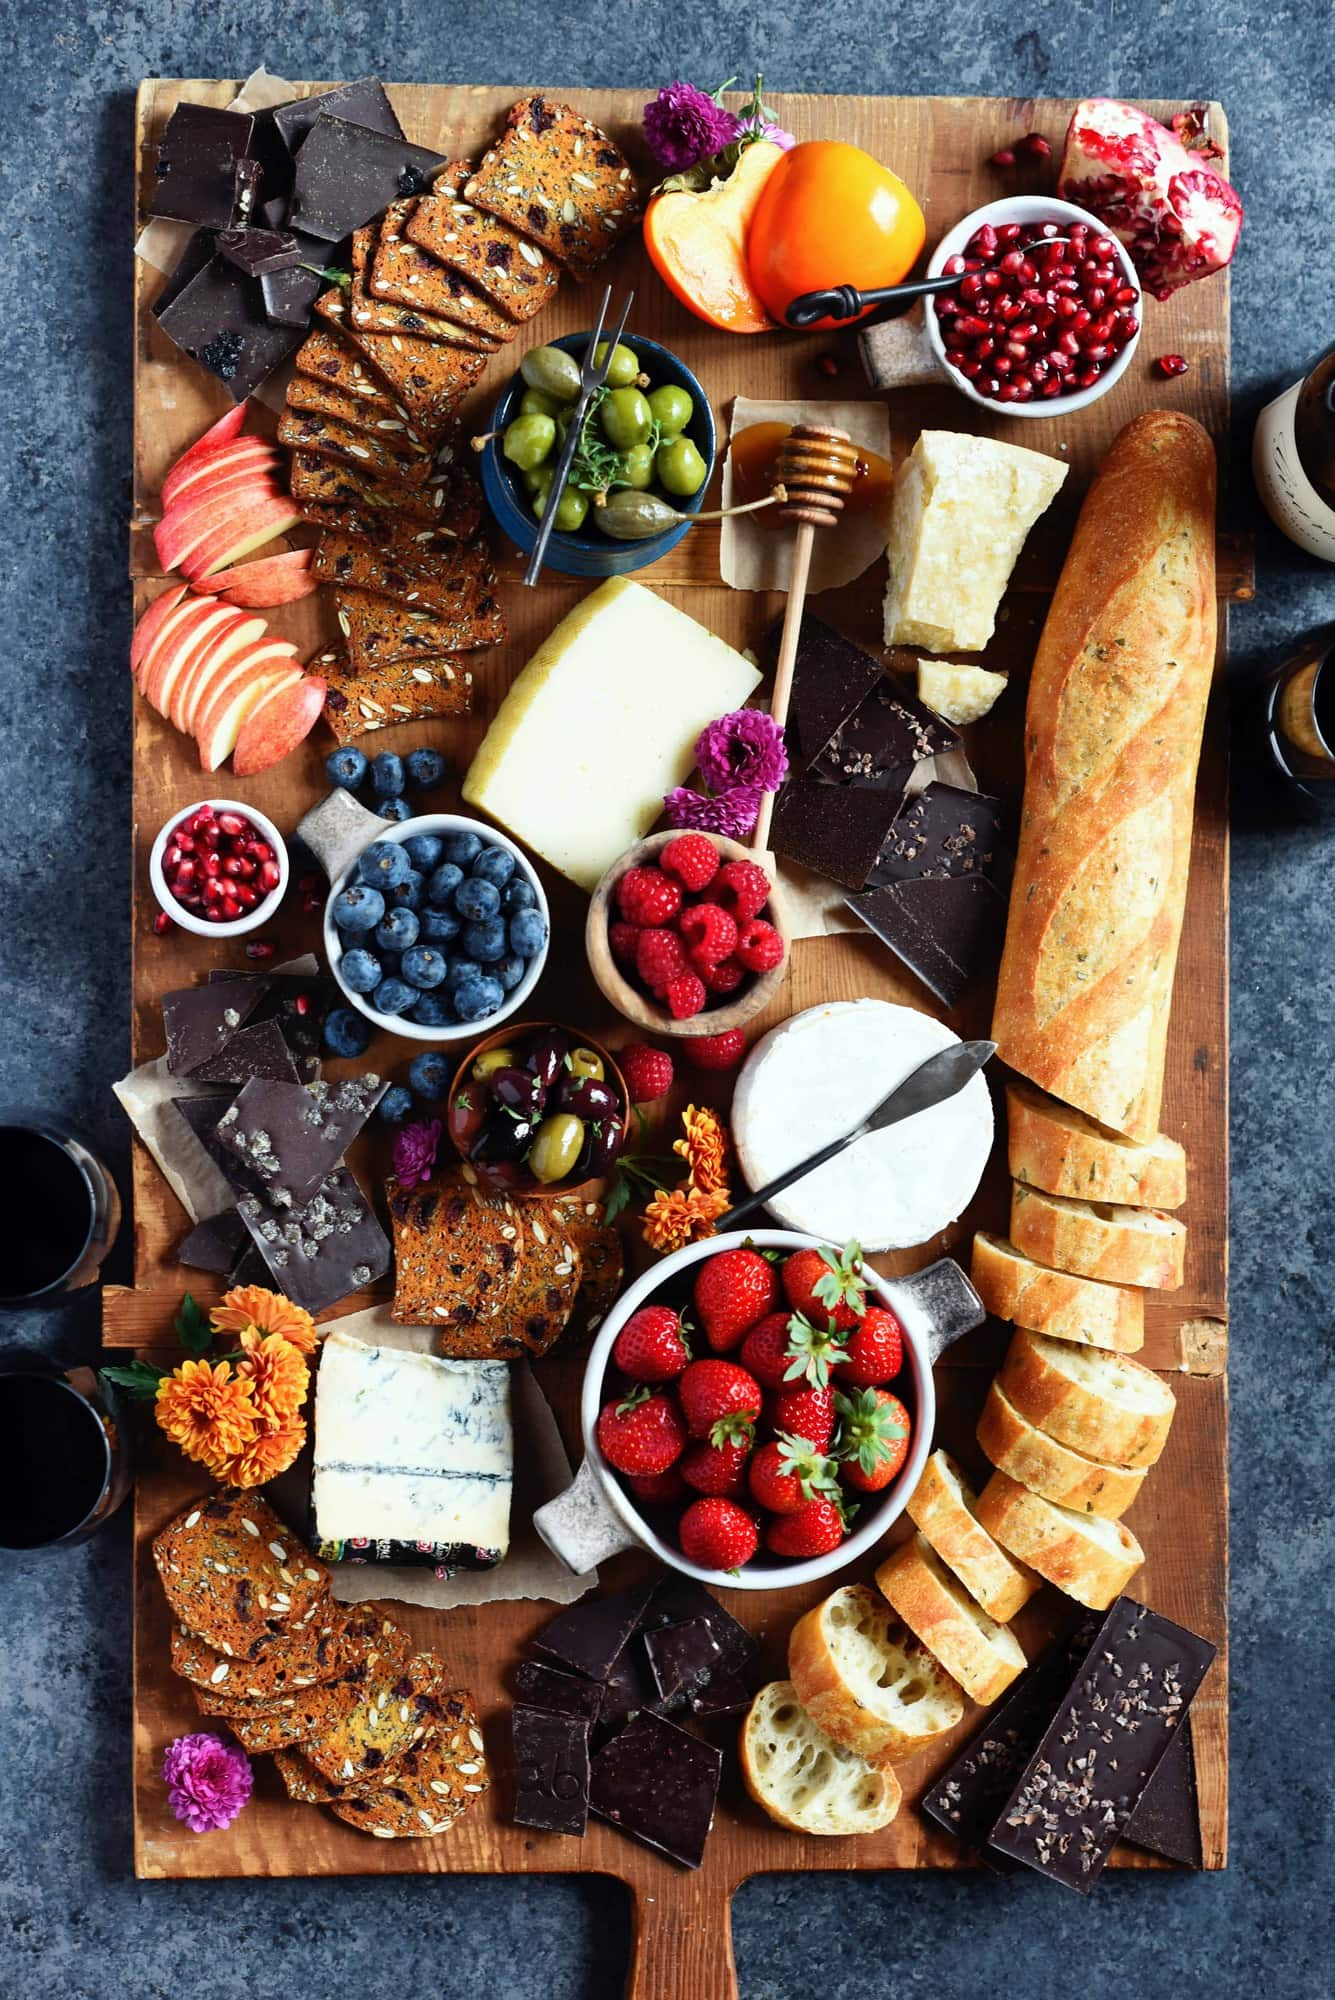 Overhead of cheese board with fresh fruit, bread and crackers